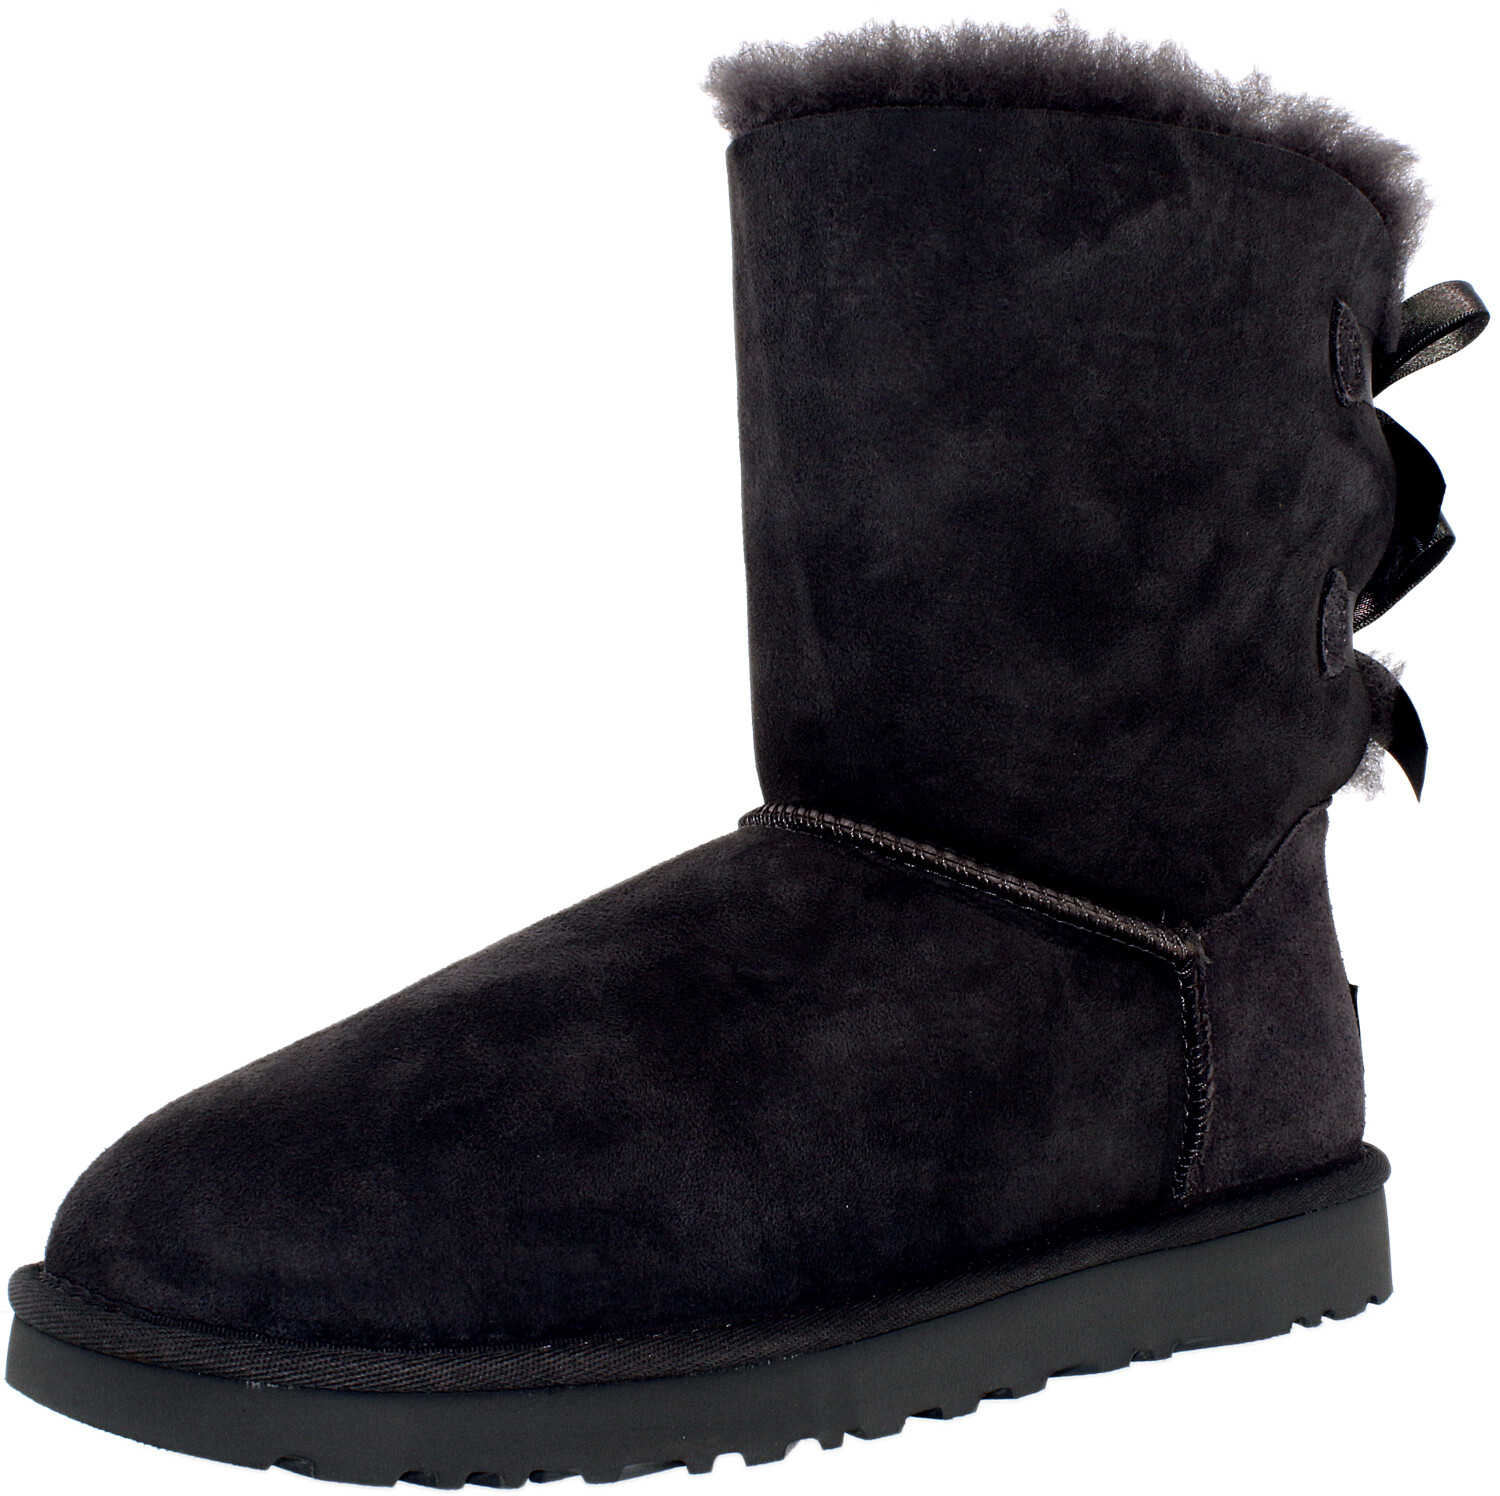 Ugg Women's Bailey Bow II Grey Ankle-High Suede Snow Boot - 7M